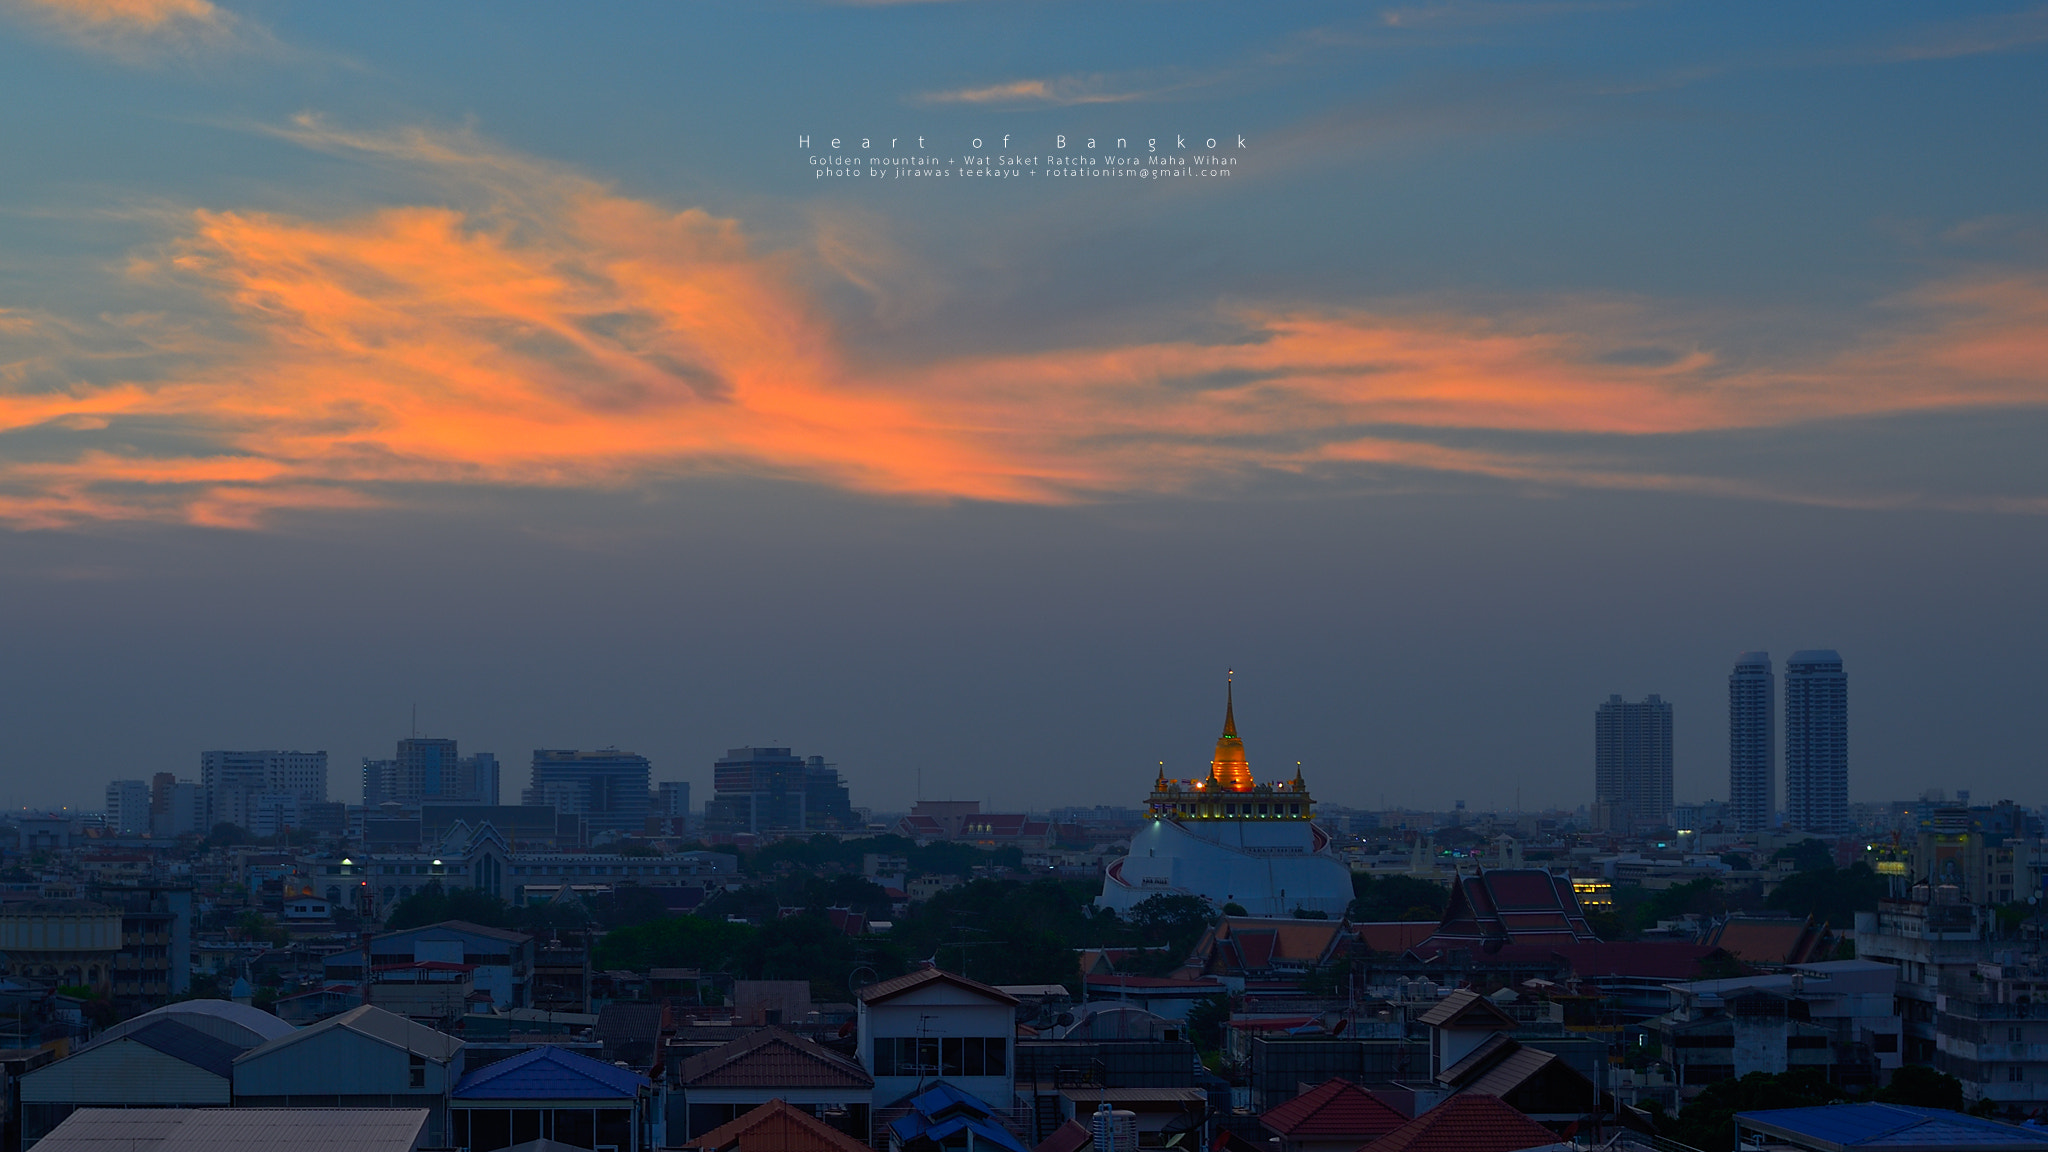 Photograph Heart of Bangkok by Jirawas Teekayu on 500px